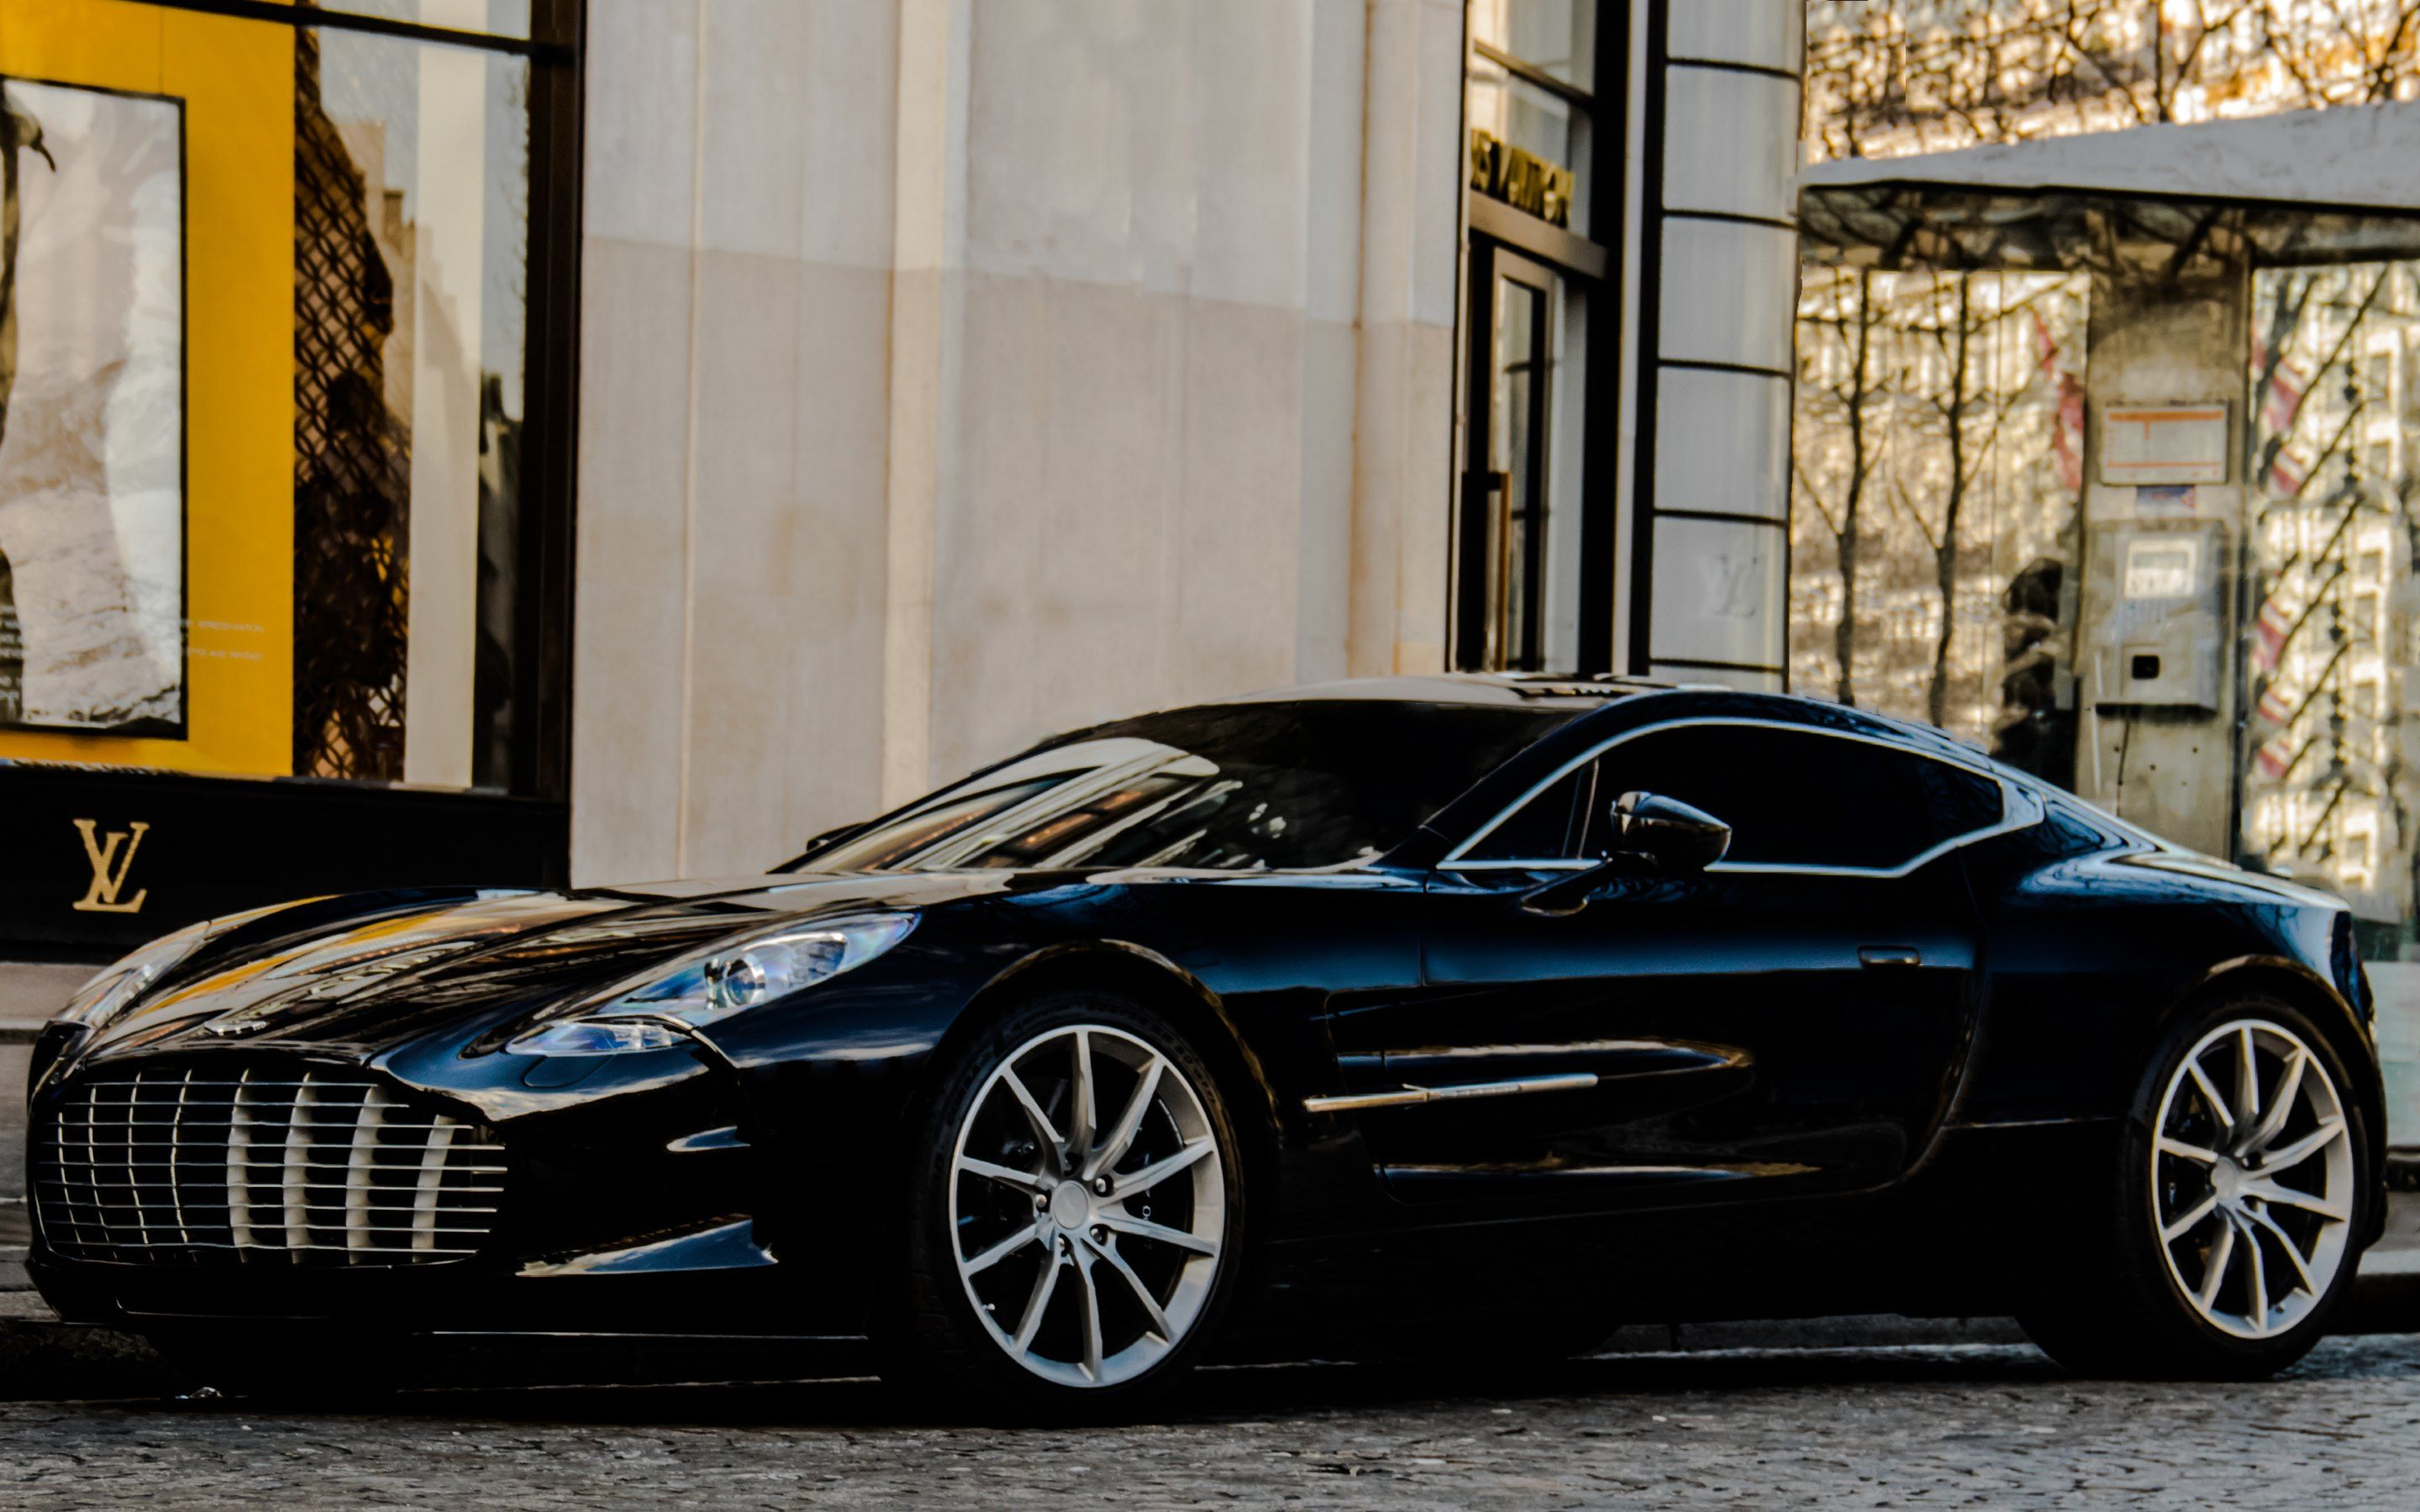 Aston Martin One 77 Wallpaper For Iphone Nd5 Aston Martin